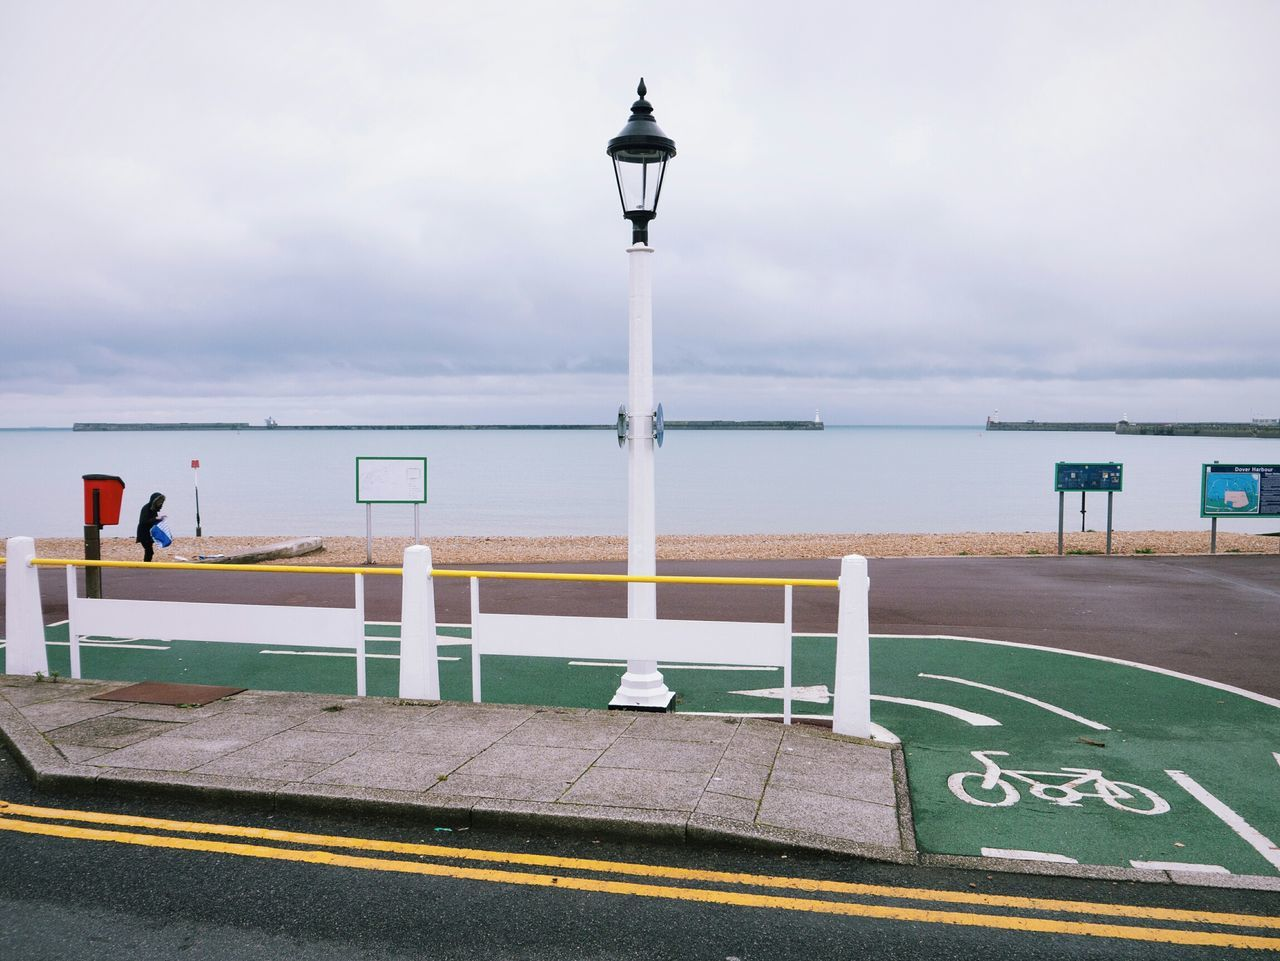 Street light by bicycle lane at beach against cloudy sky